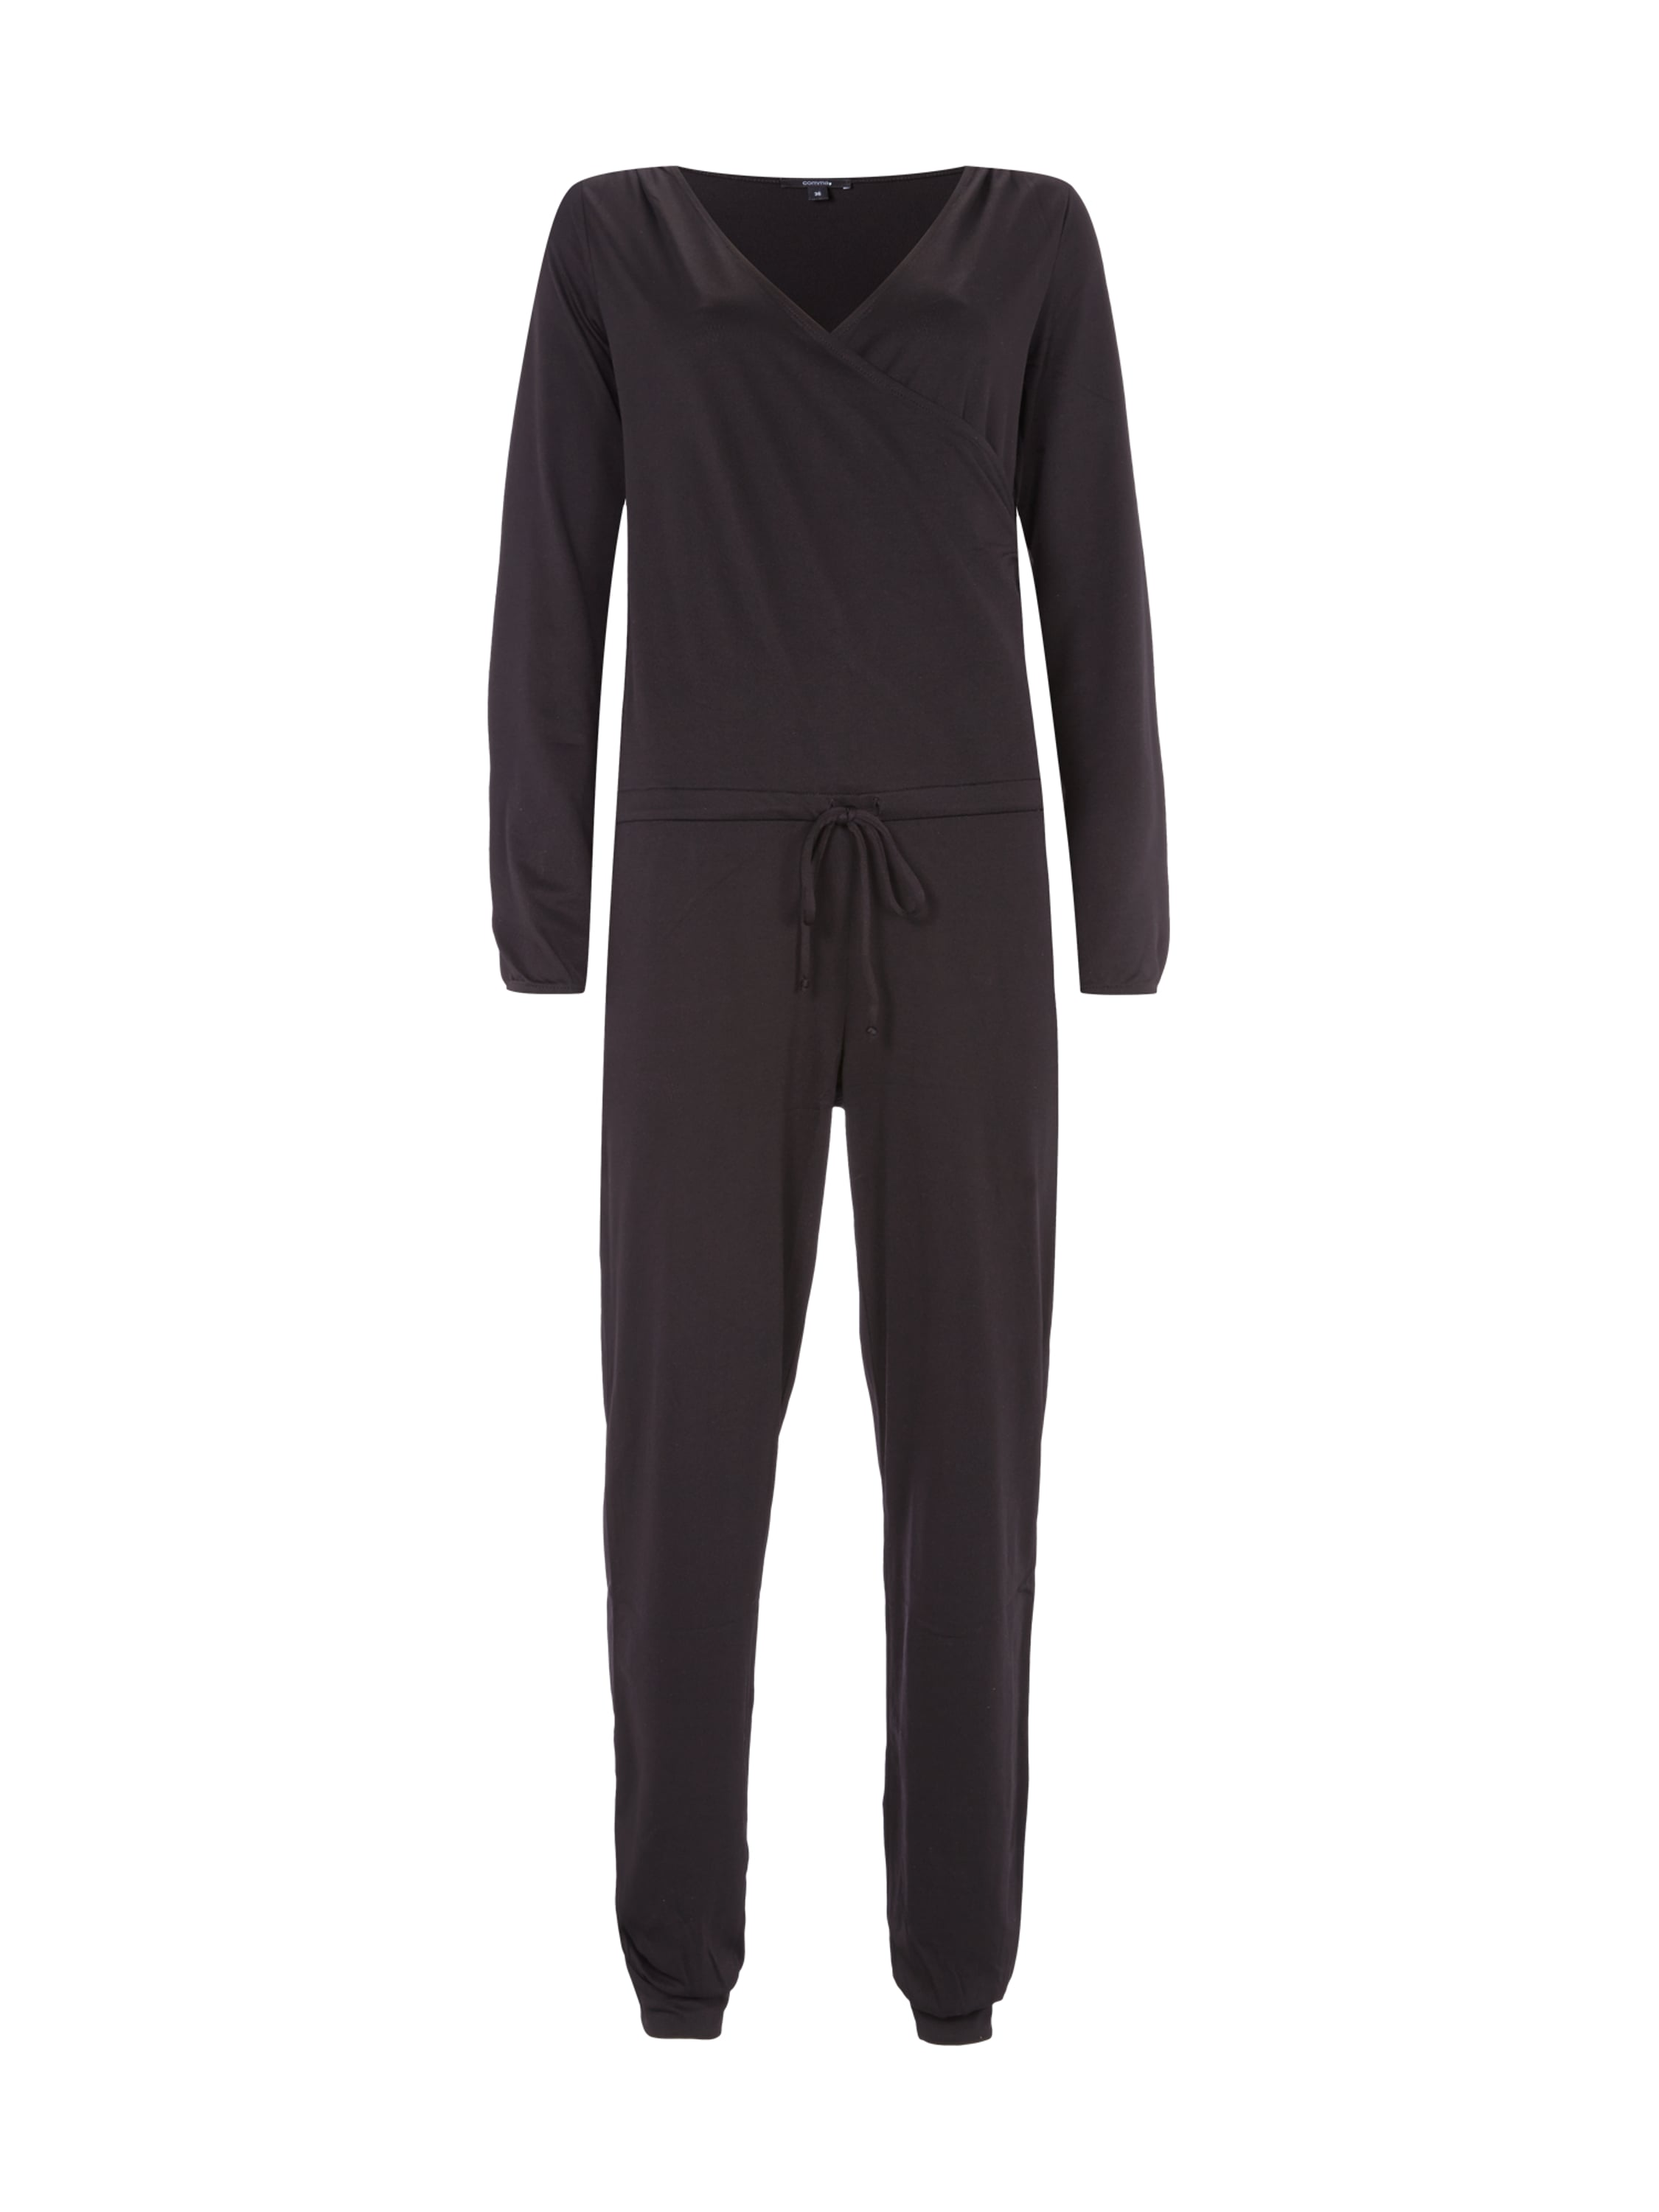 Jumpsuit Edel Comma Jumpsuit Mit Oberteil In Wickel Optik Und Tunnelzug